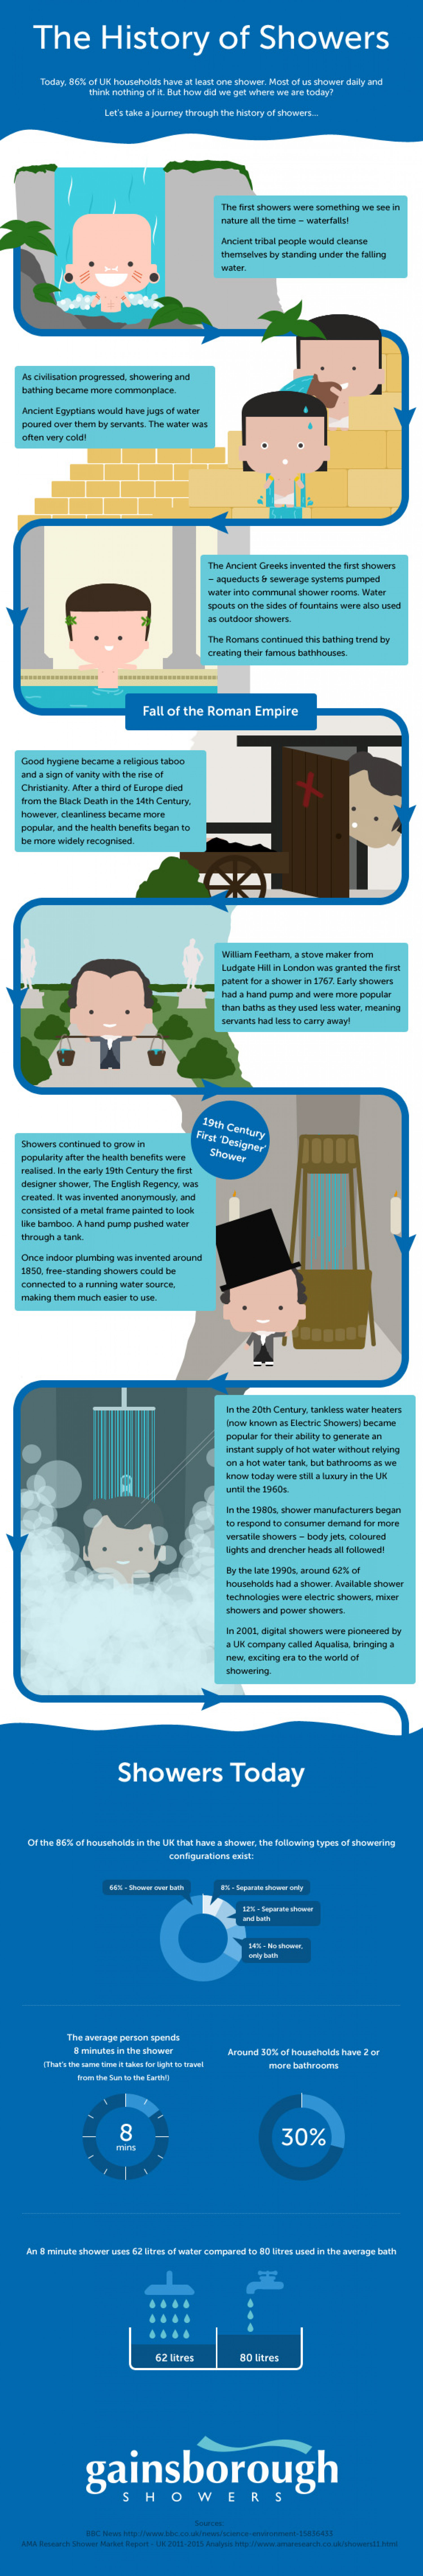 The History of Showers Infographic